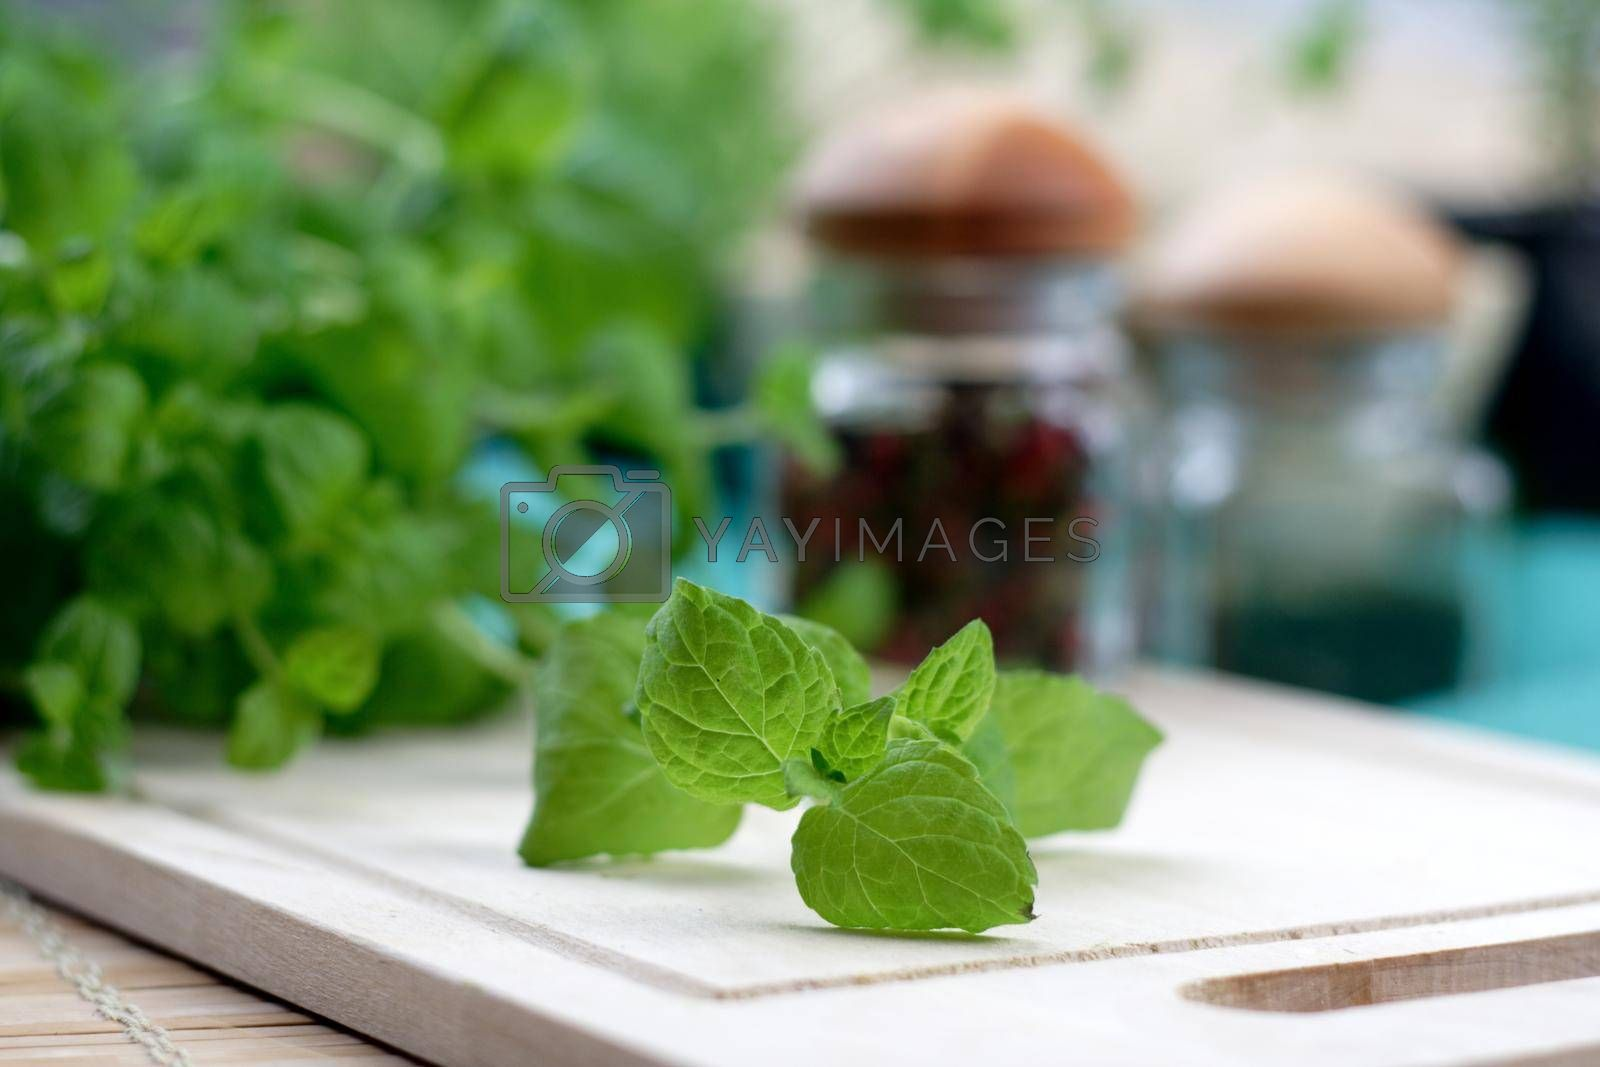 Studio shot of fresh oregano